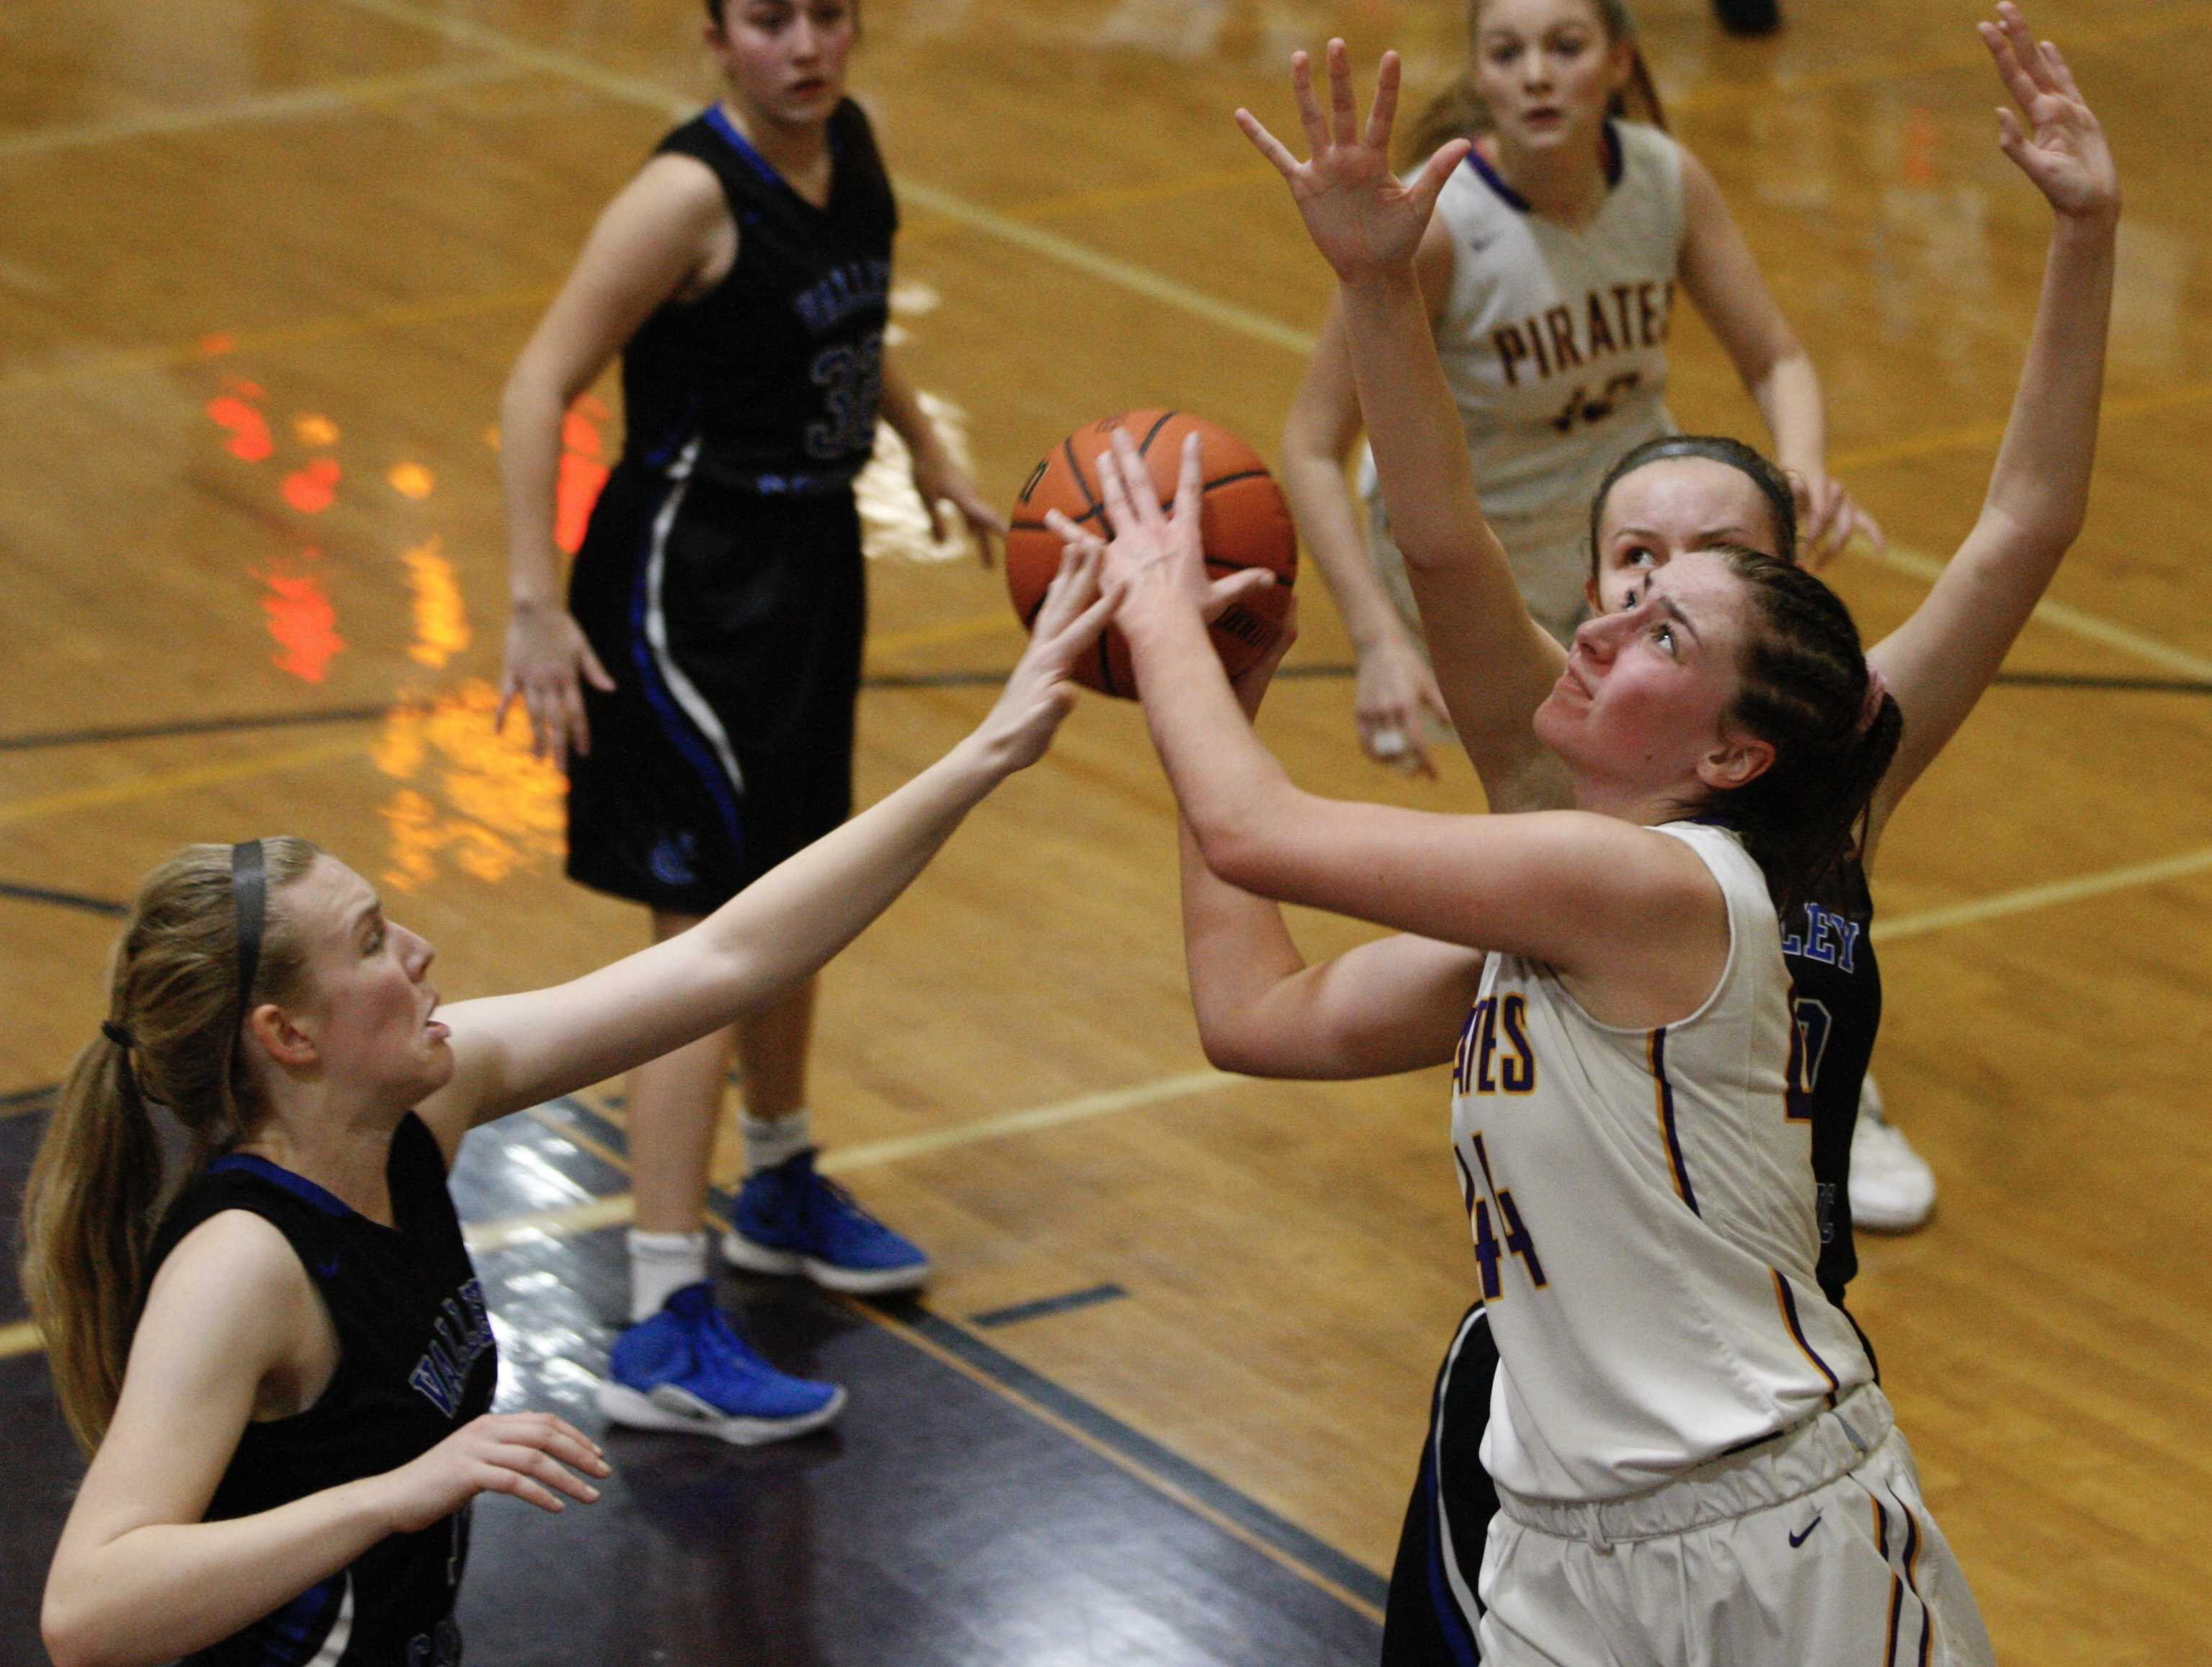 Marshfield's Alex Locati slices between two Valley Catholic defenders for two of her 12 points.